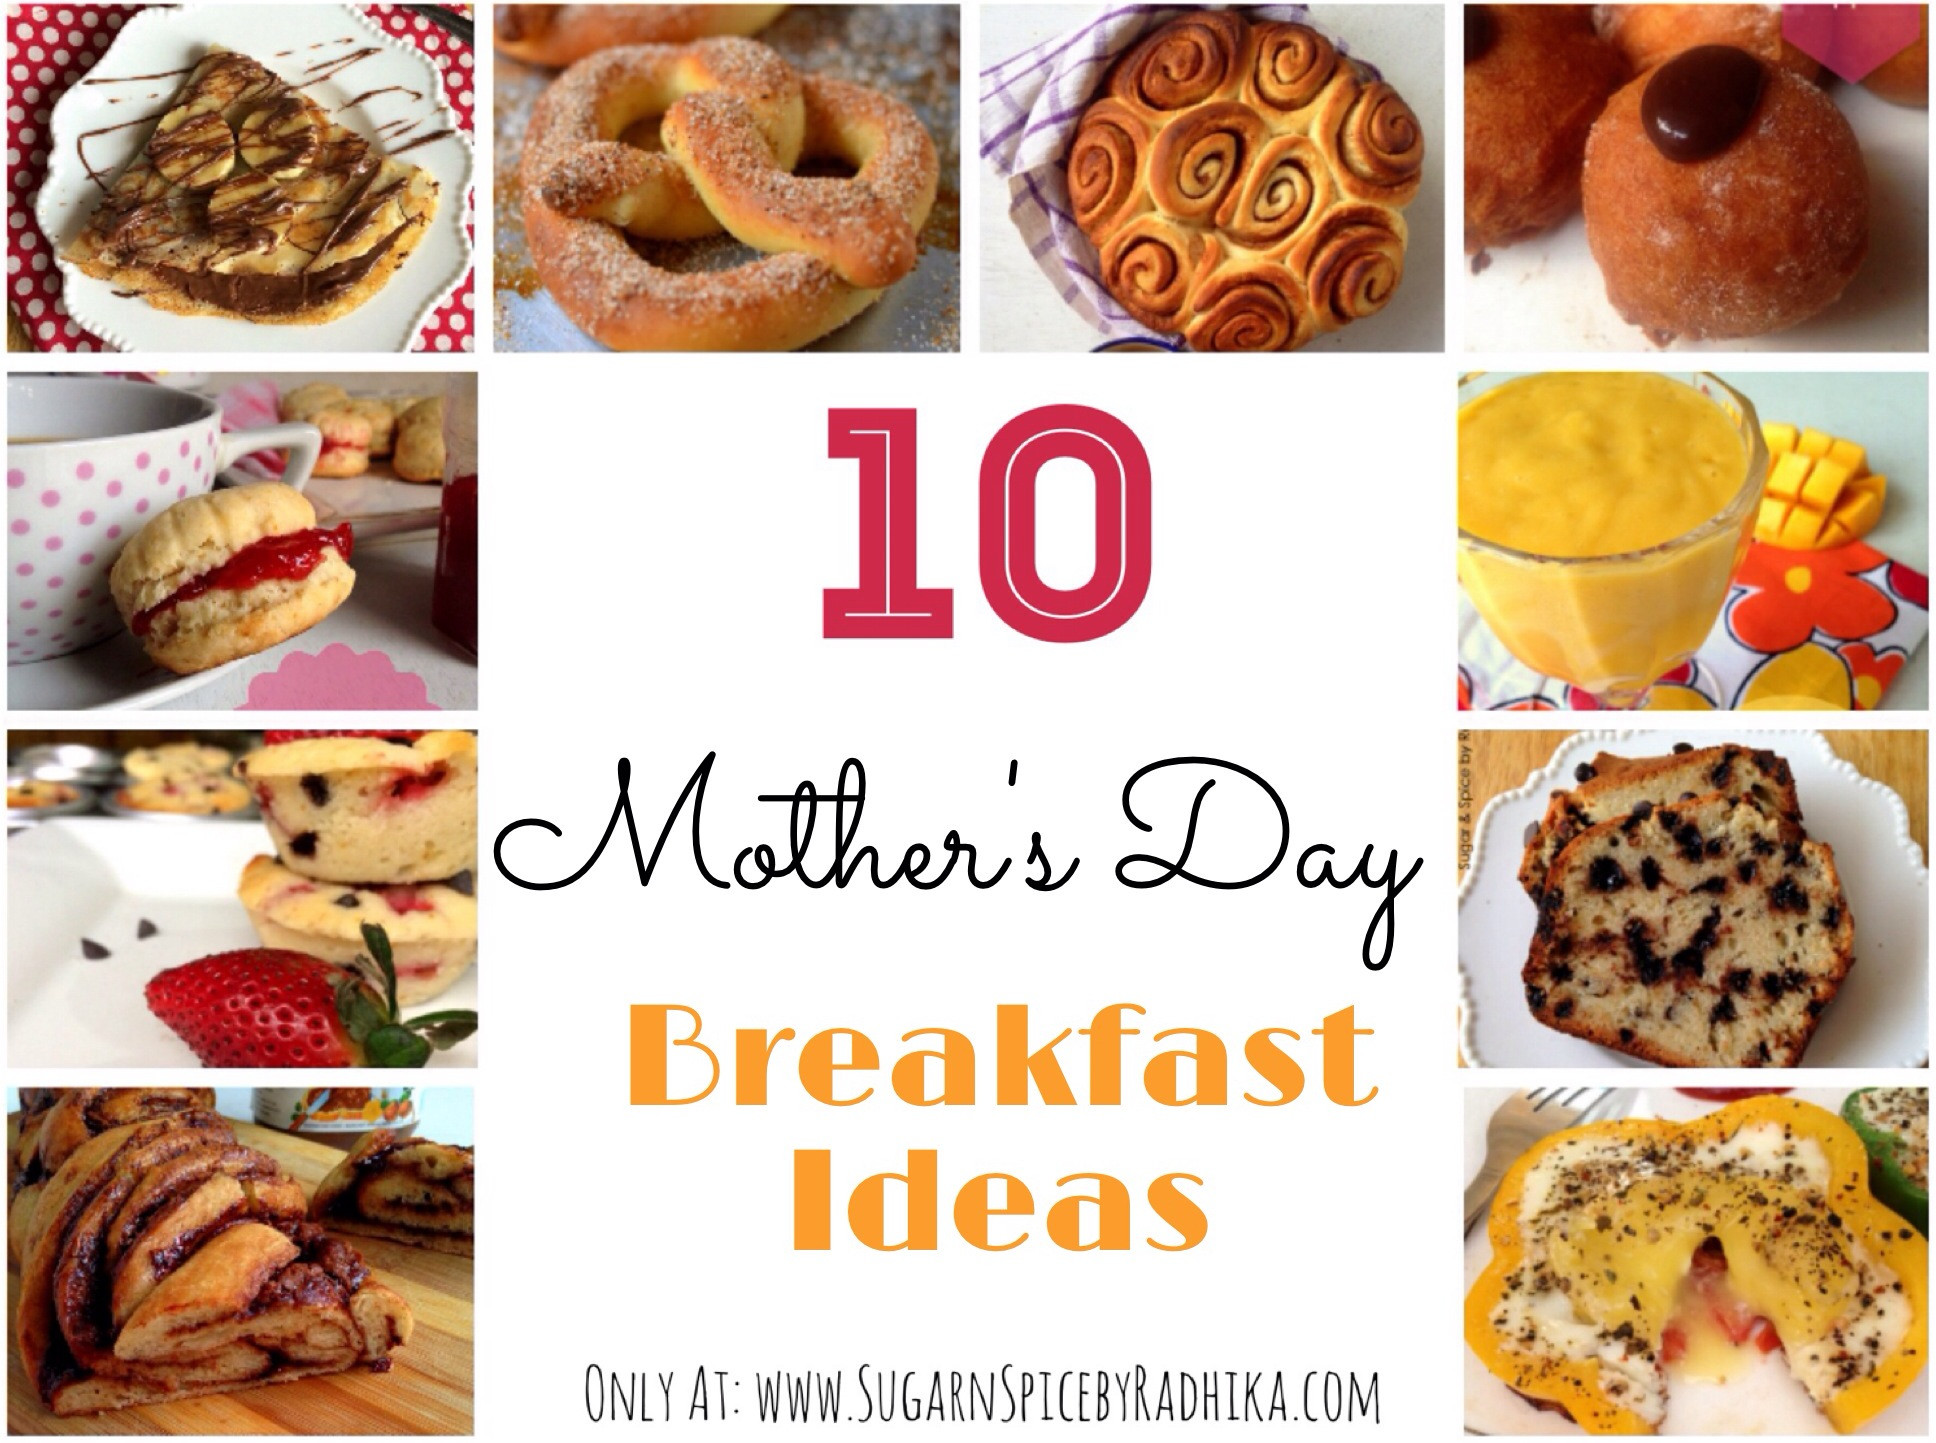 Mother Day Breakfast Recipes  Mother s day Breakfast Ideas Sugar & Spice by Radhika